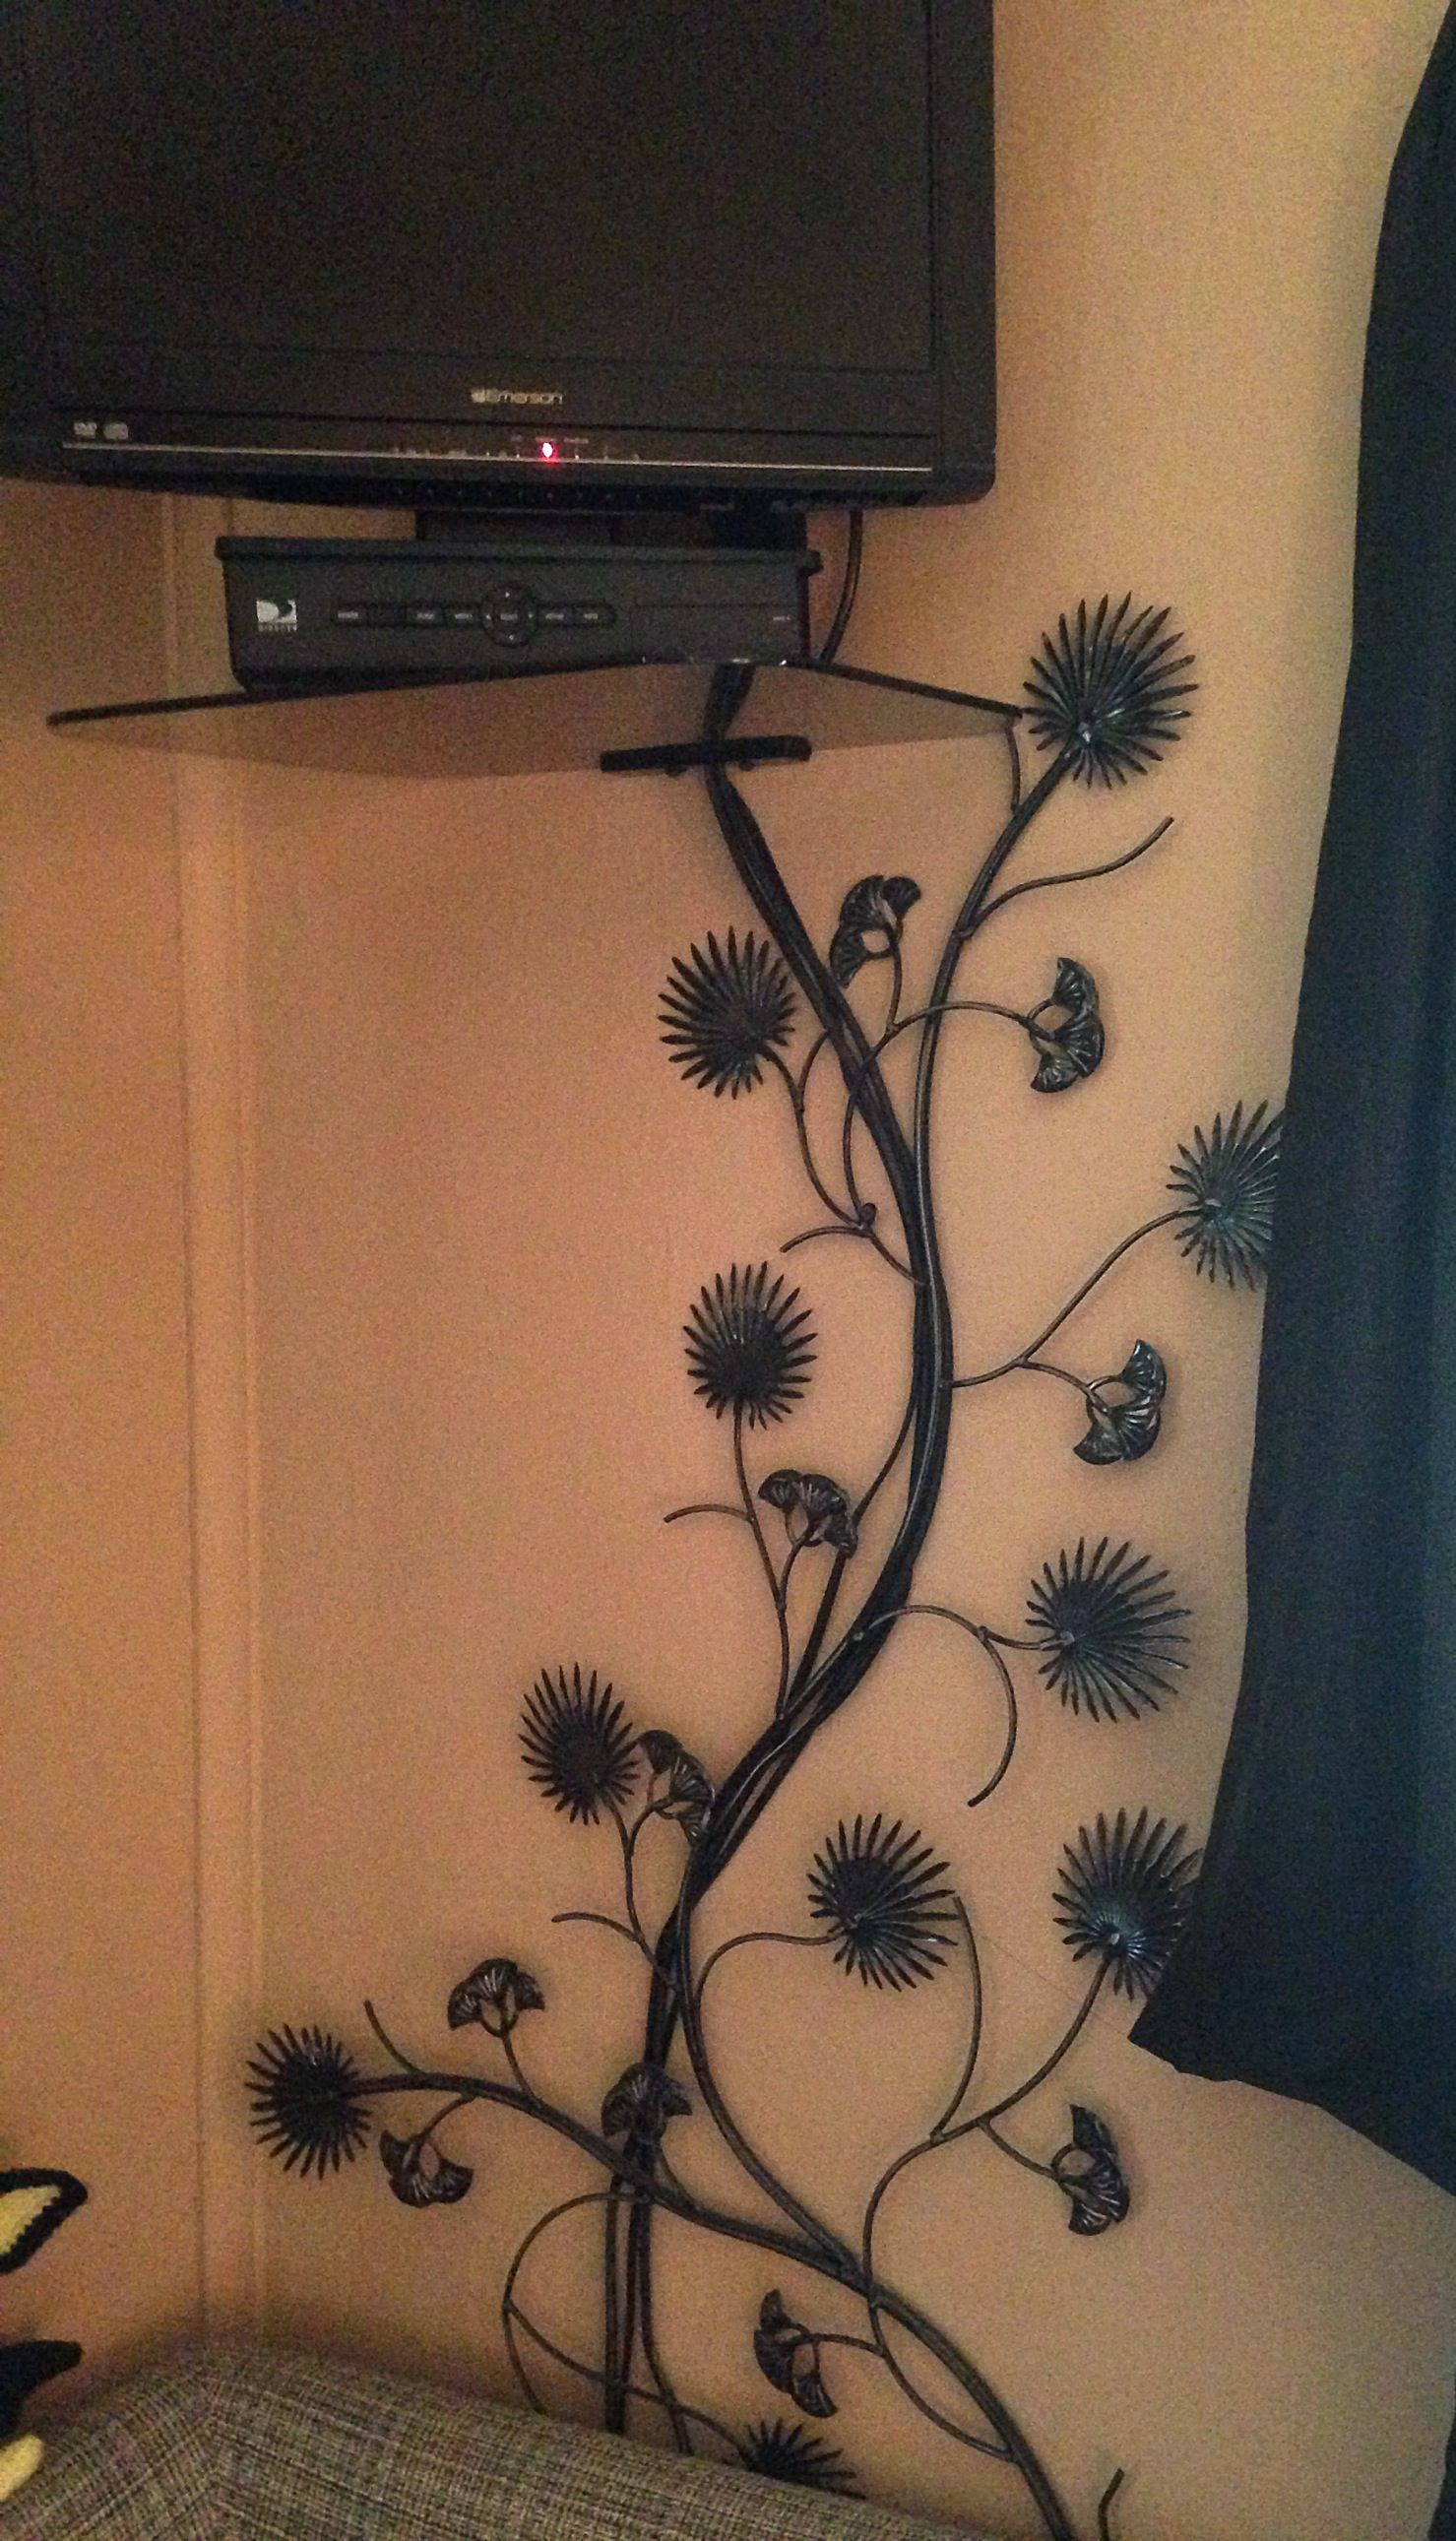 Need a way to hide TV cords? Find a vine like wall decoration and place it over the cords. Doesn't matter if it's an outdoor decoration! I think I got this one at Target